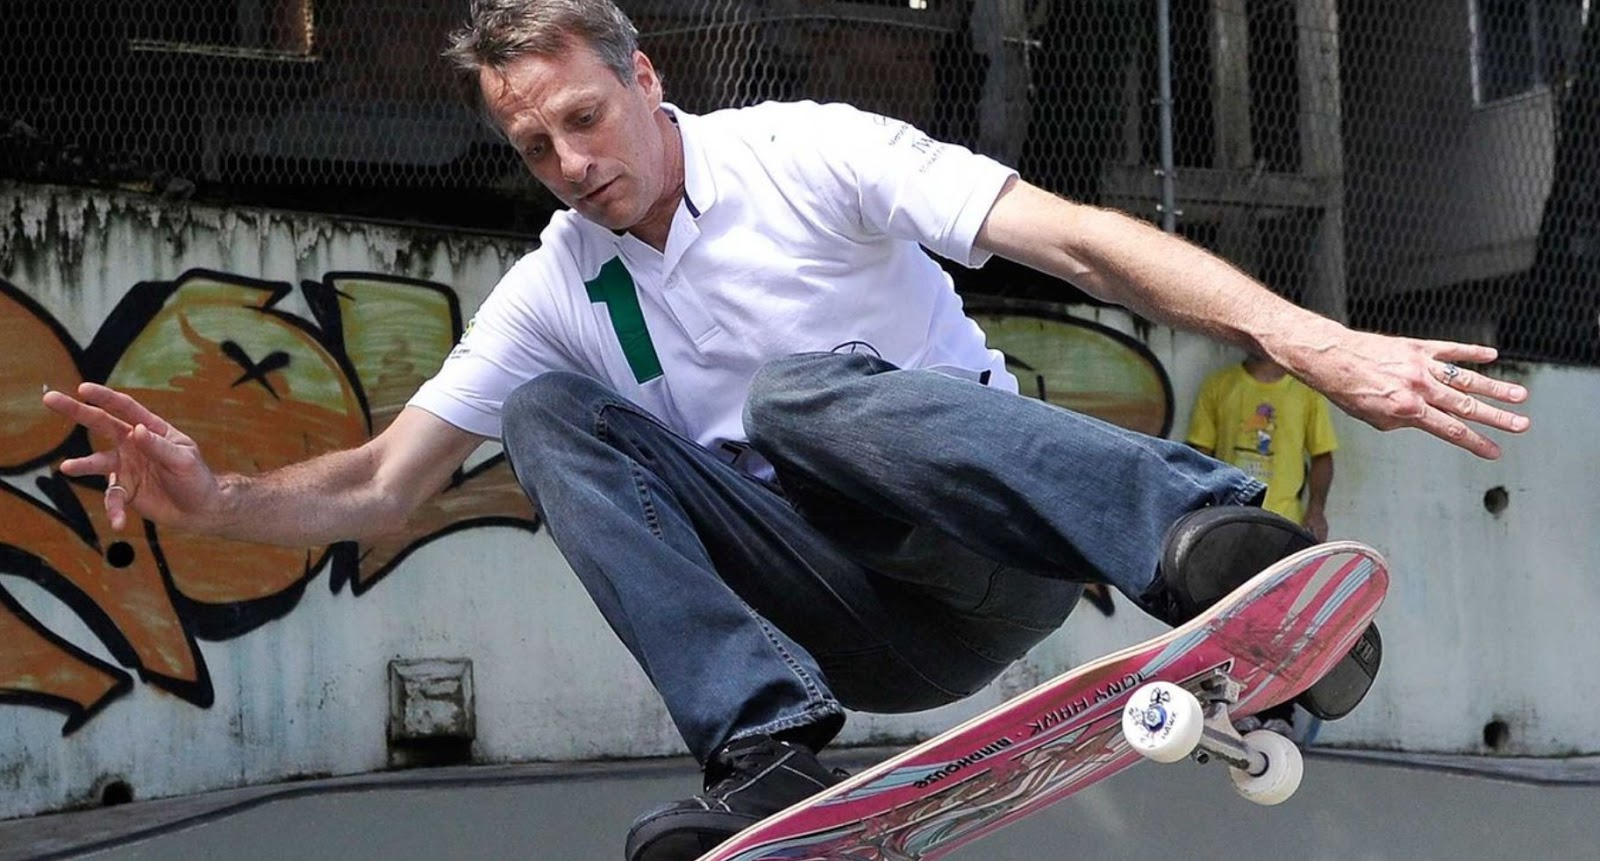 All-time Richest Skateboarders in the World (Past & Present)